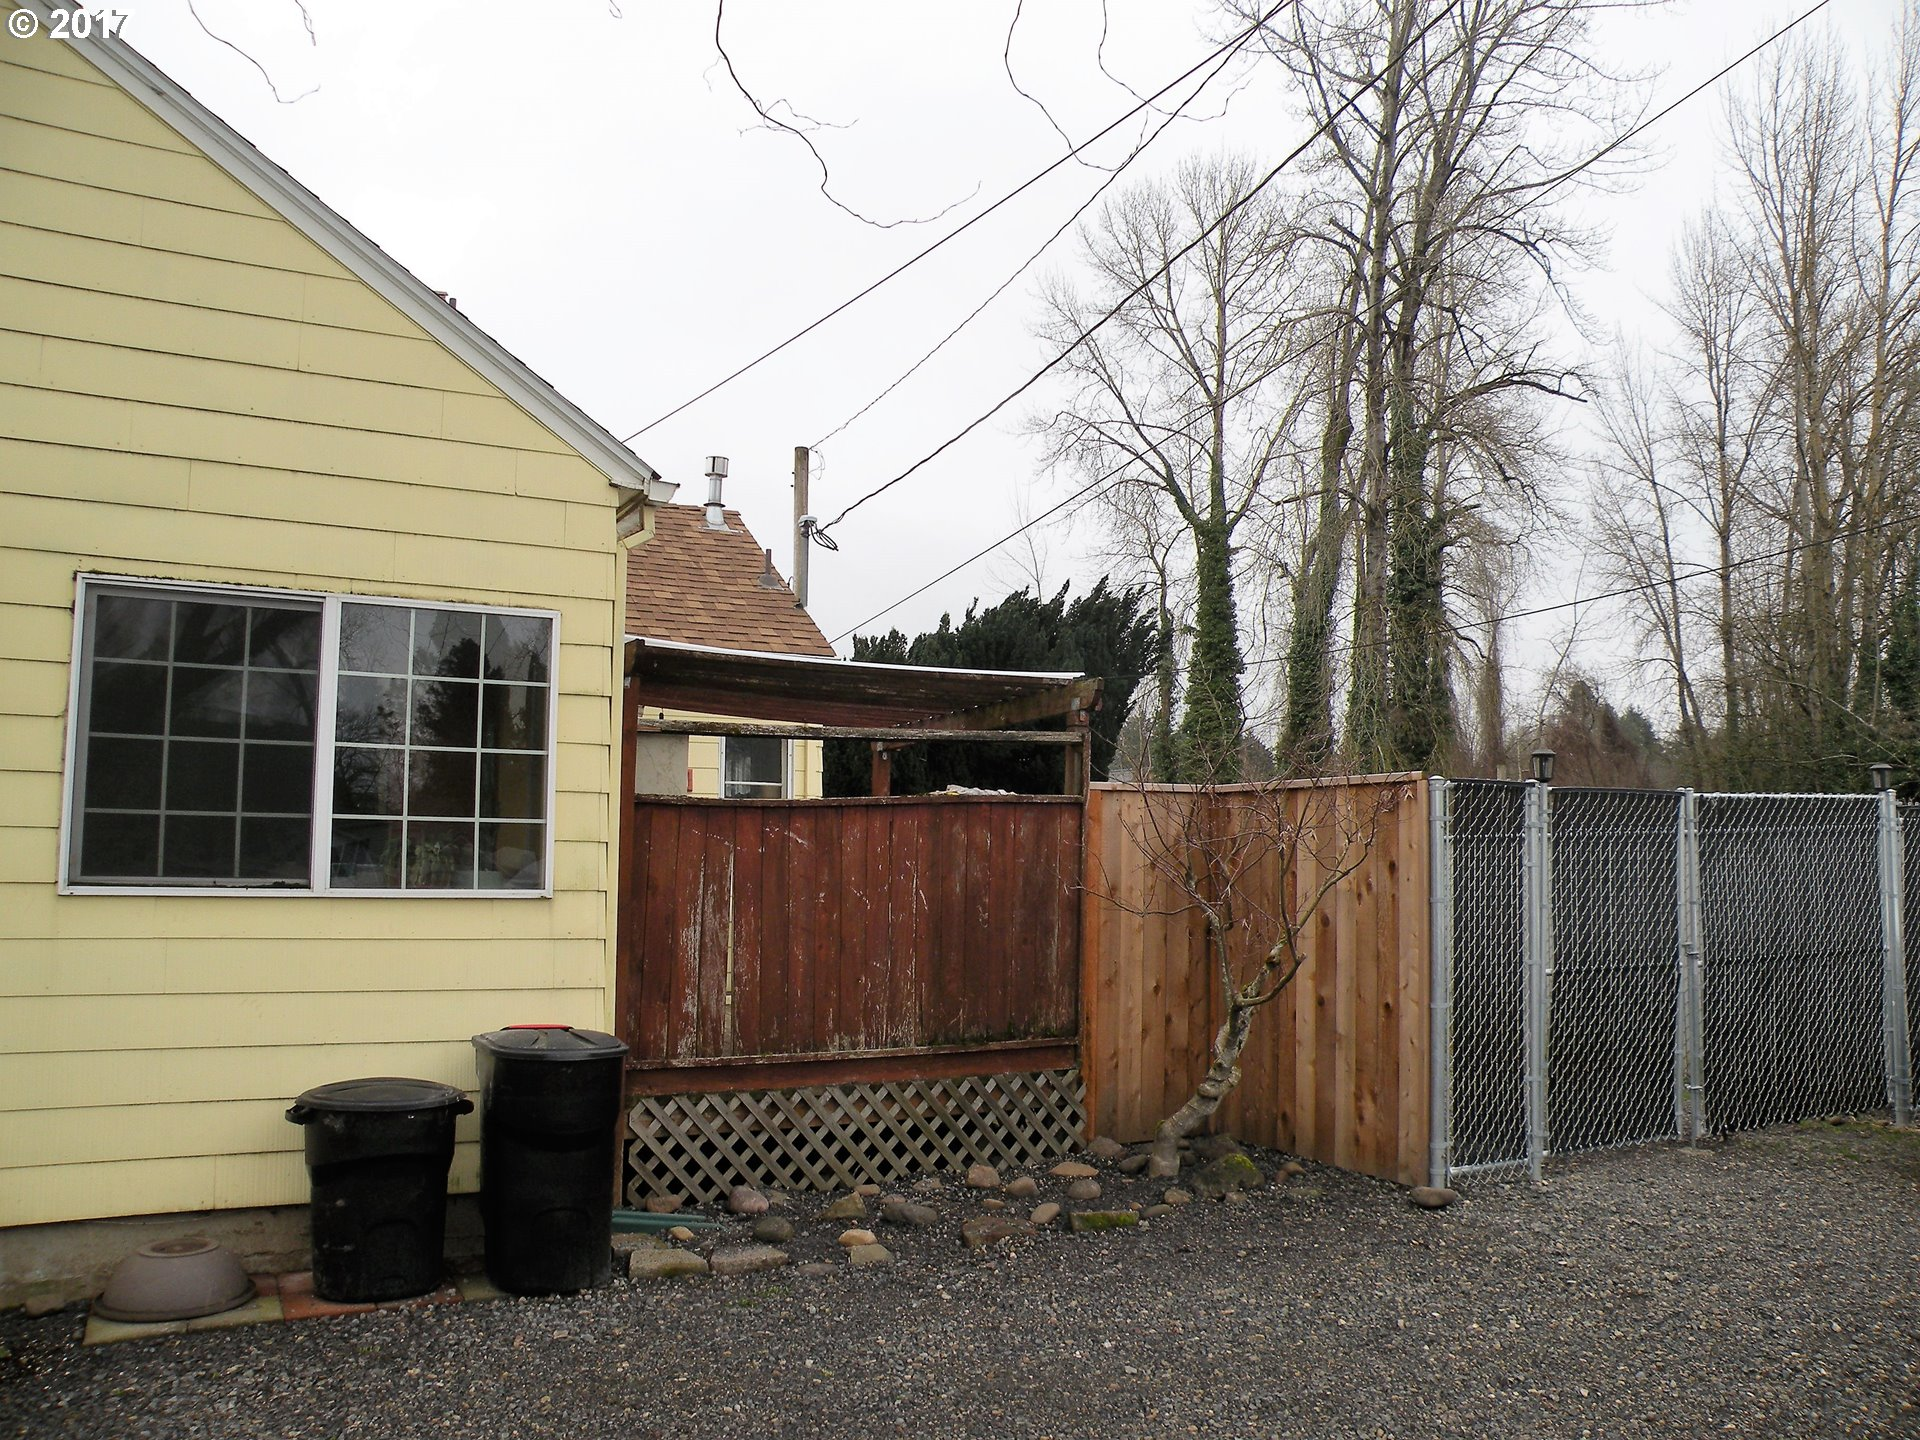 1723 sq. ft 4 bedrooms 1 bathrooms  House For Sale, Portland, OR